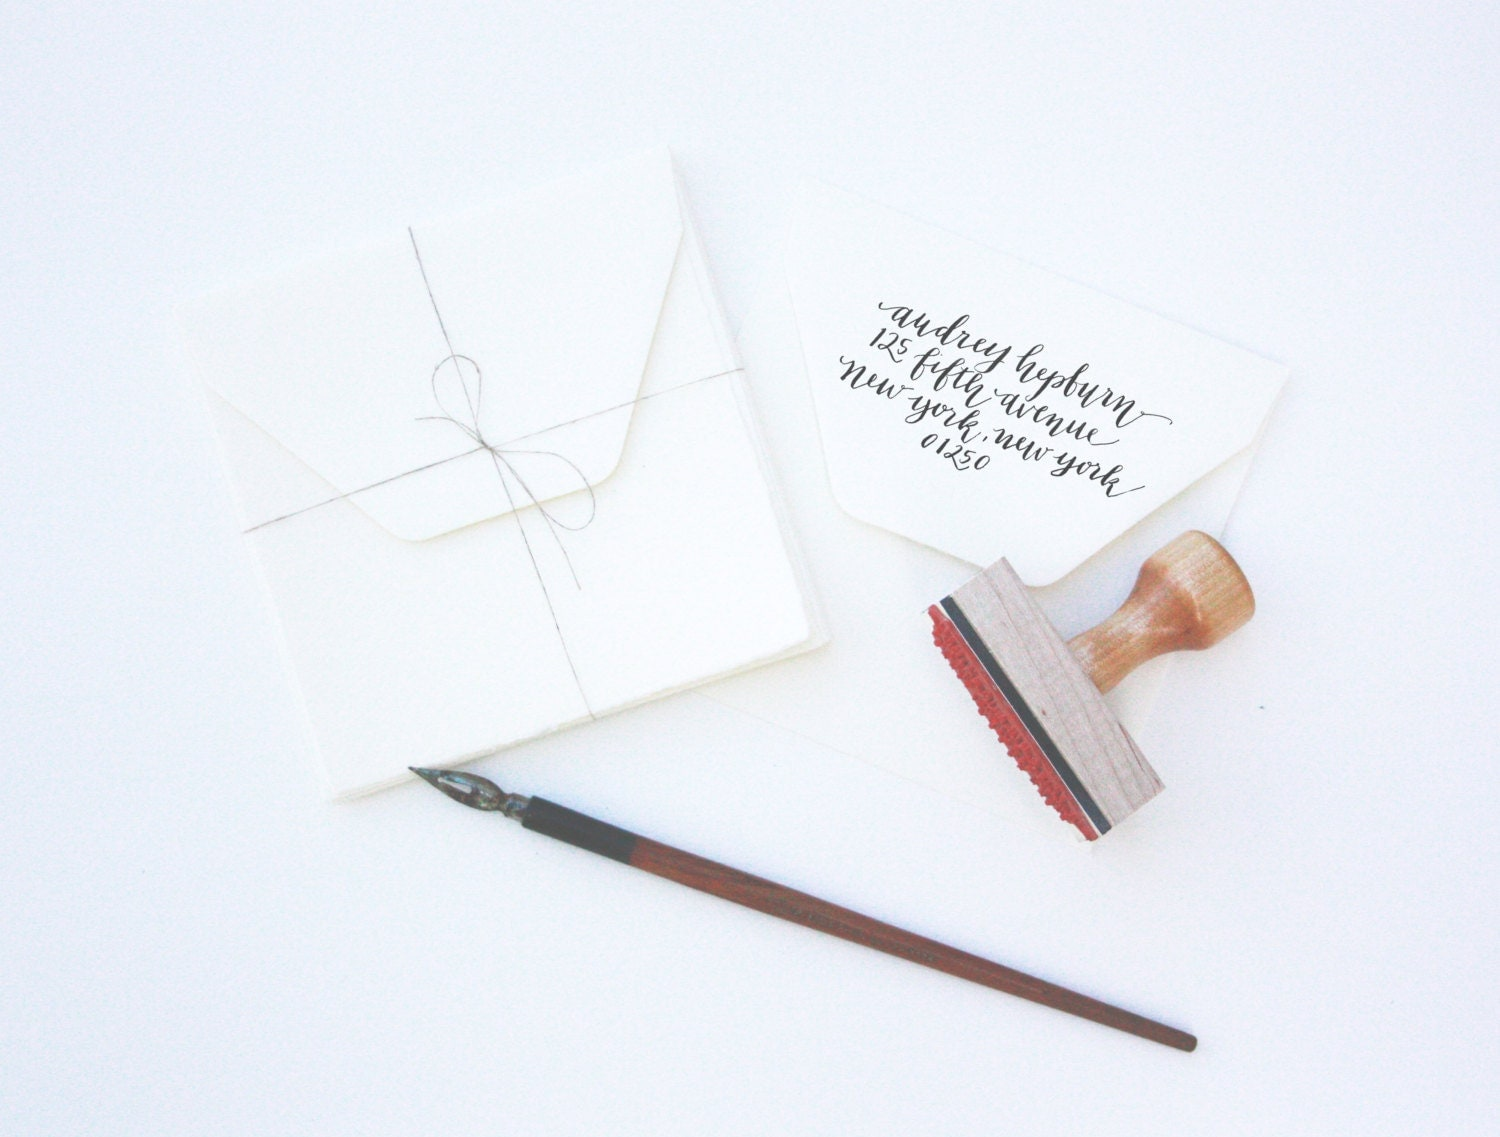 Custom Calligraphy Stamp From Thehivestudioshop On Etsy Studio